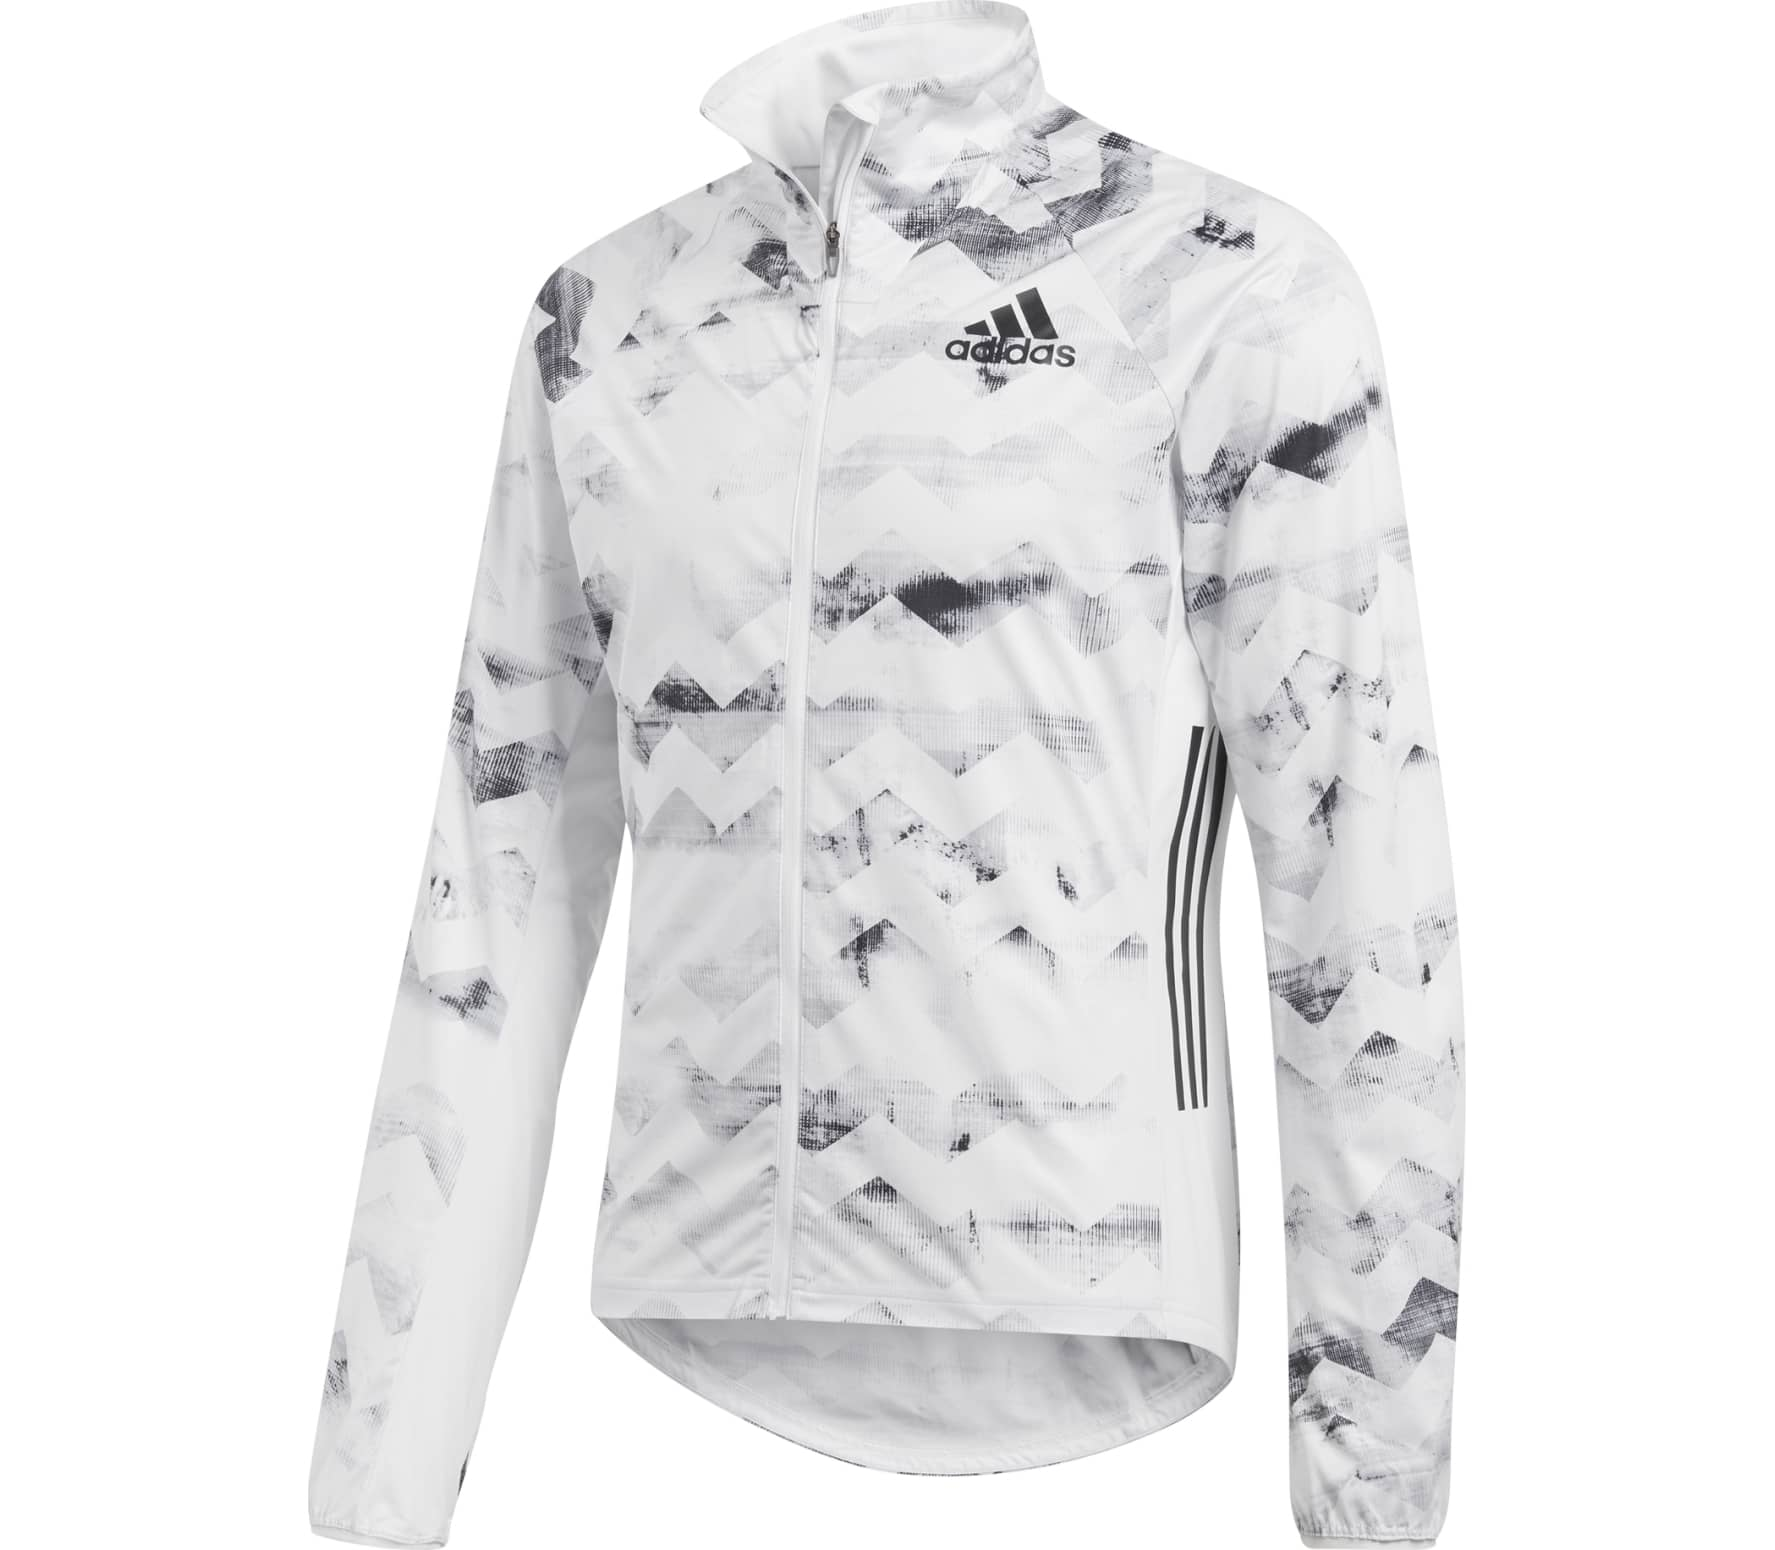 Adidas - Adizero Track men's running jacket (white/grey) - S thumbnail